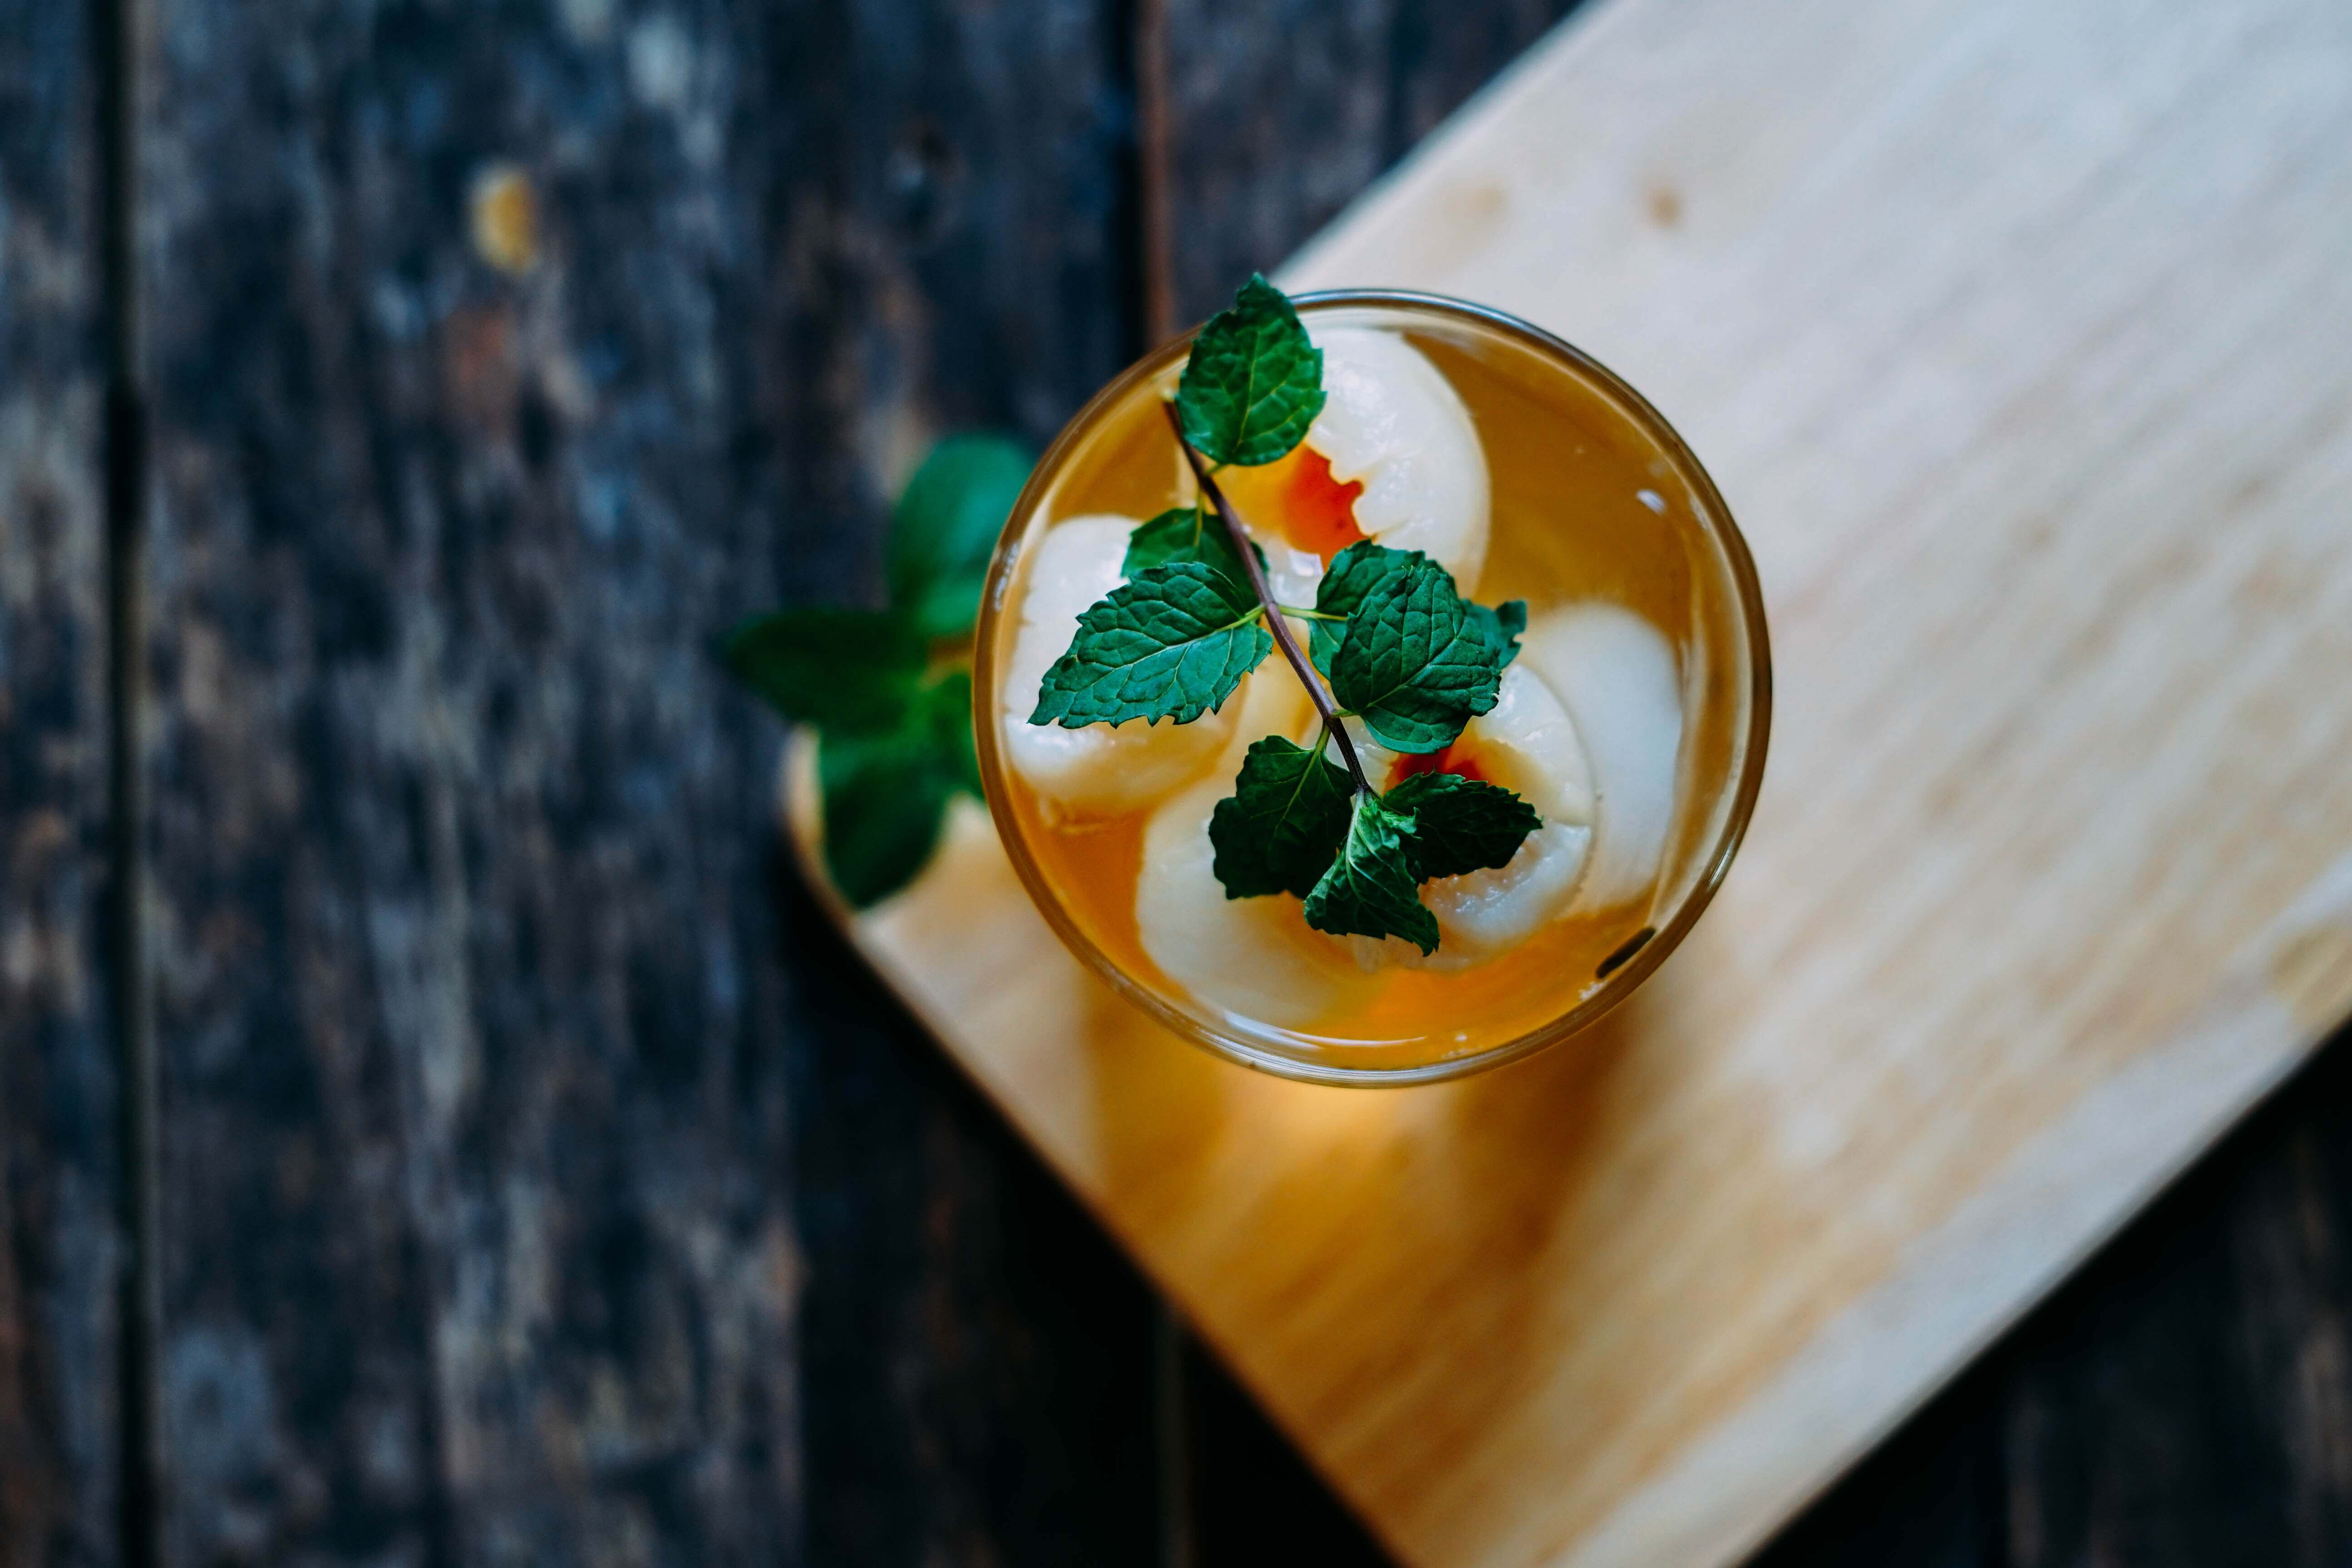 mixed cocktail - Unsplash